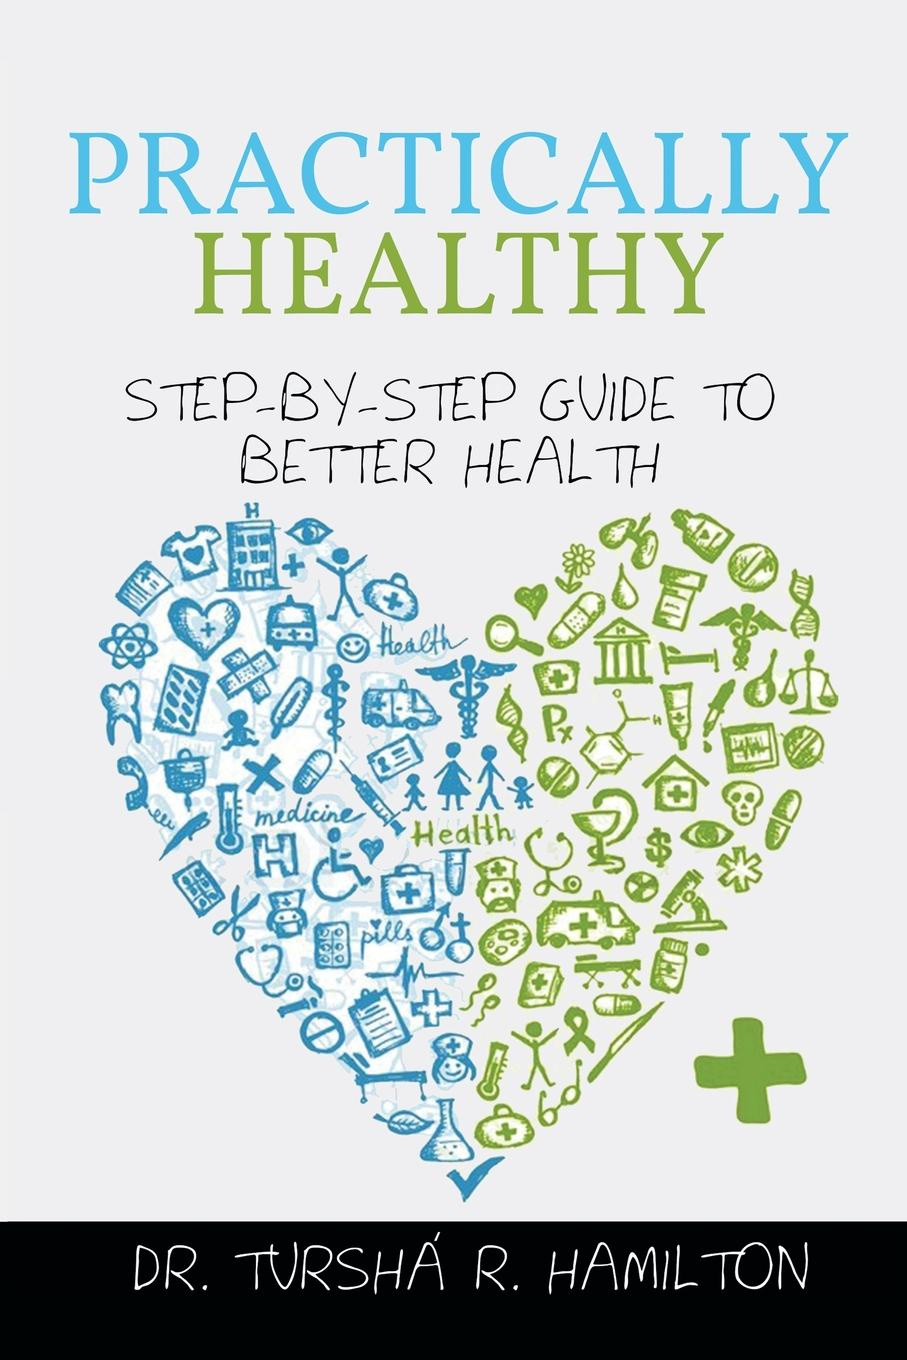 Tursha R. Hamilton Practically Healthy. Step-By-Step Guide to Better Health